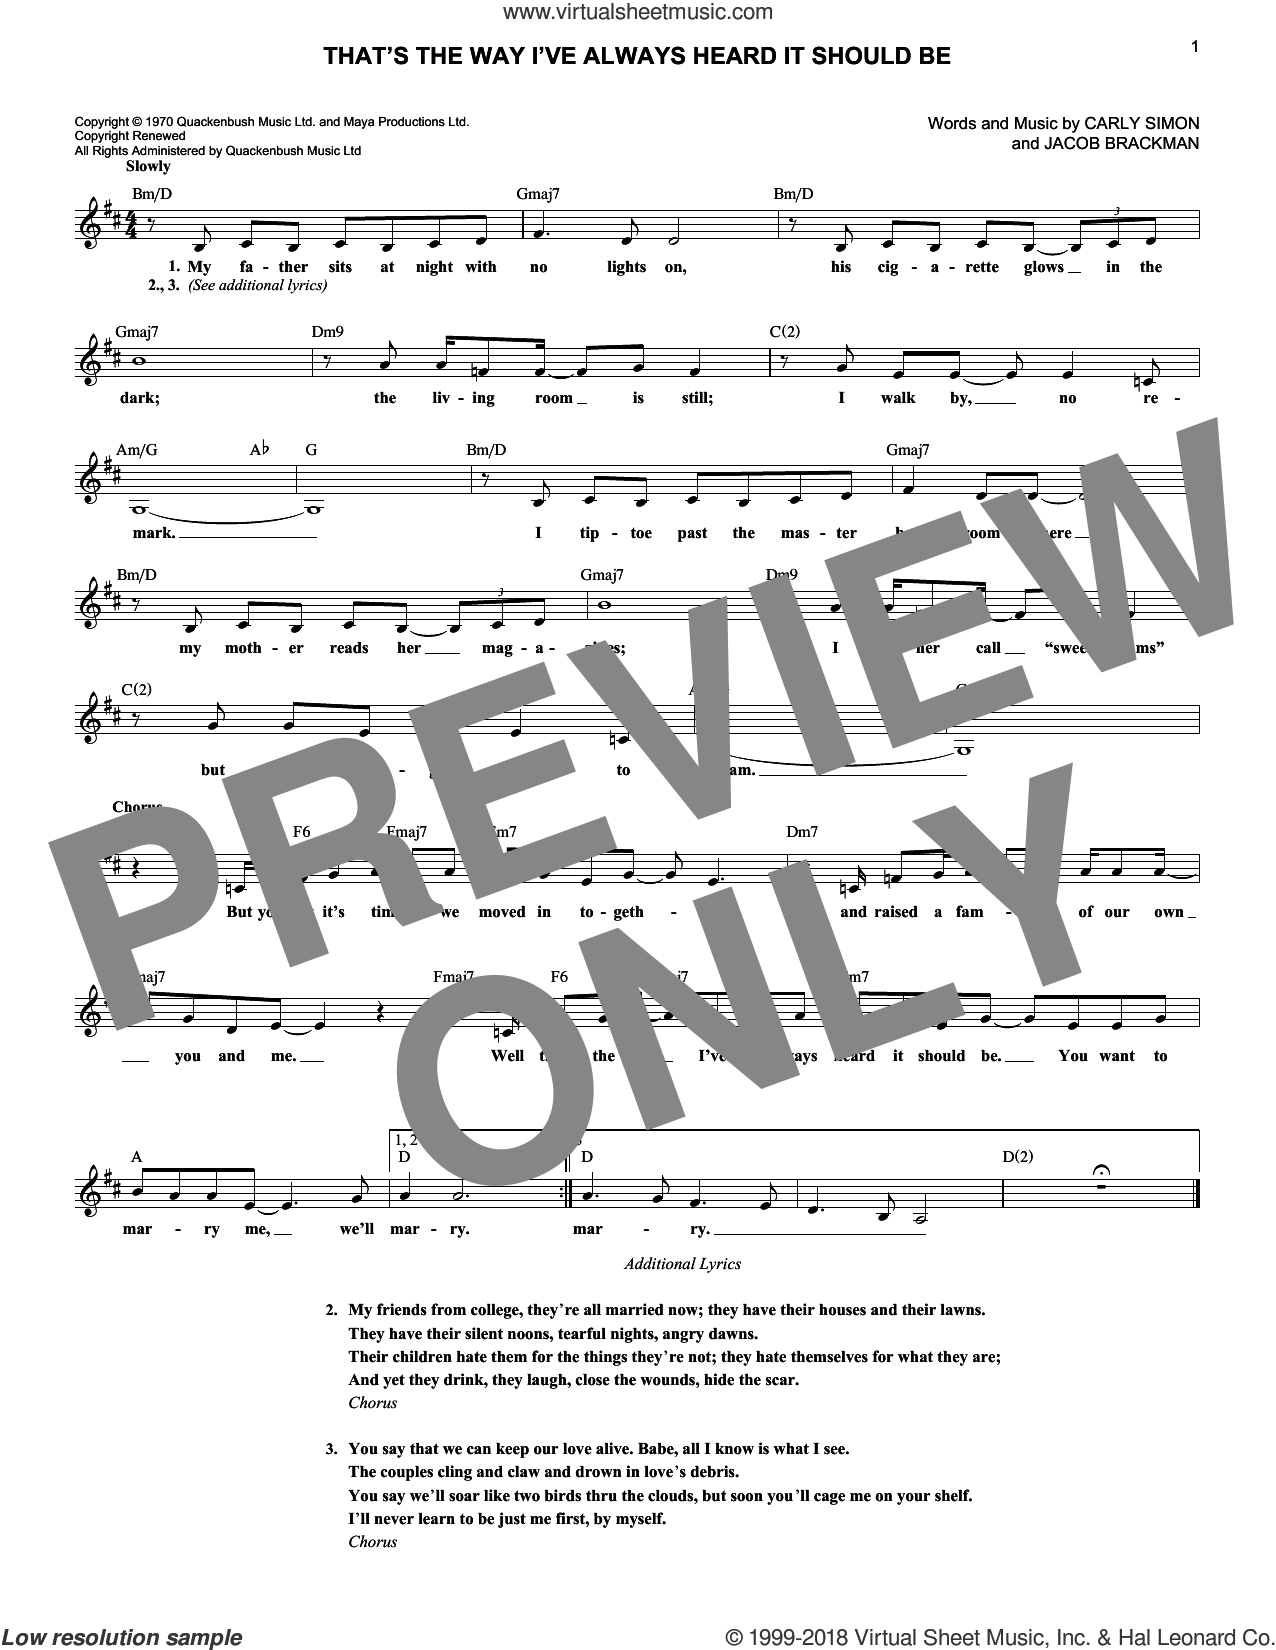 That's The Way I've Always Heard It Should Be sheet music for voice and other instruments (fake book) by Carly Simon and Jacob Brackman, intermediate skill level